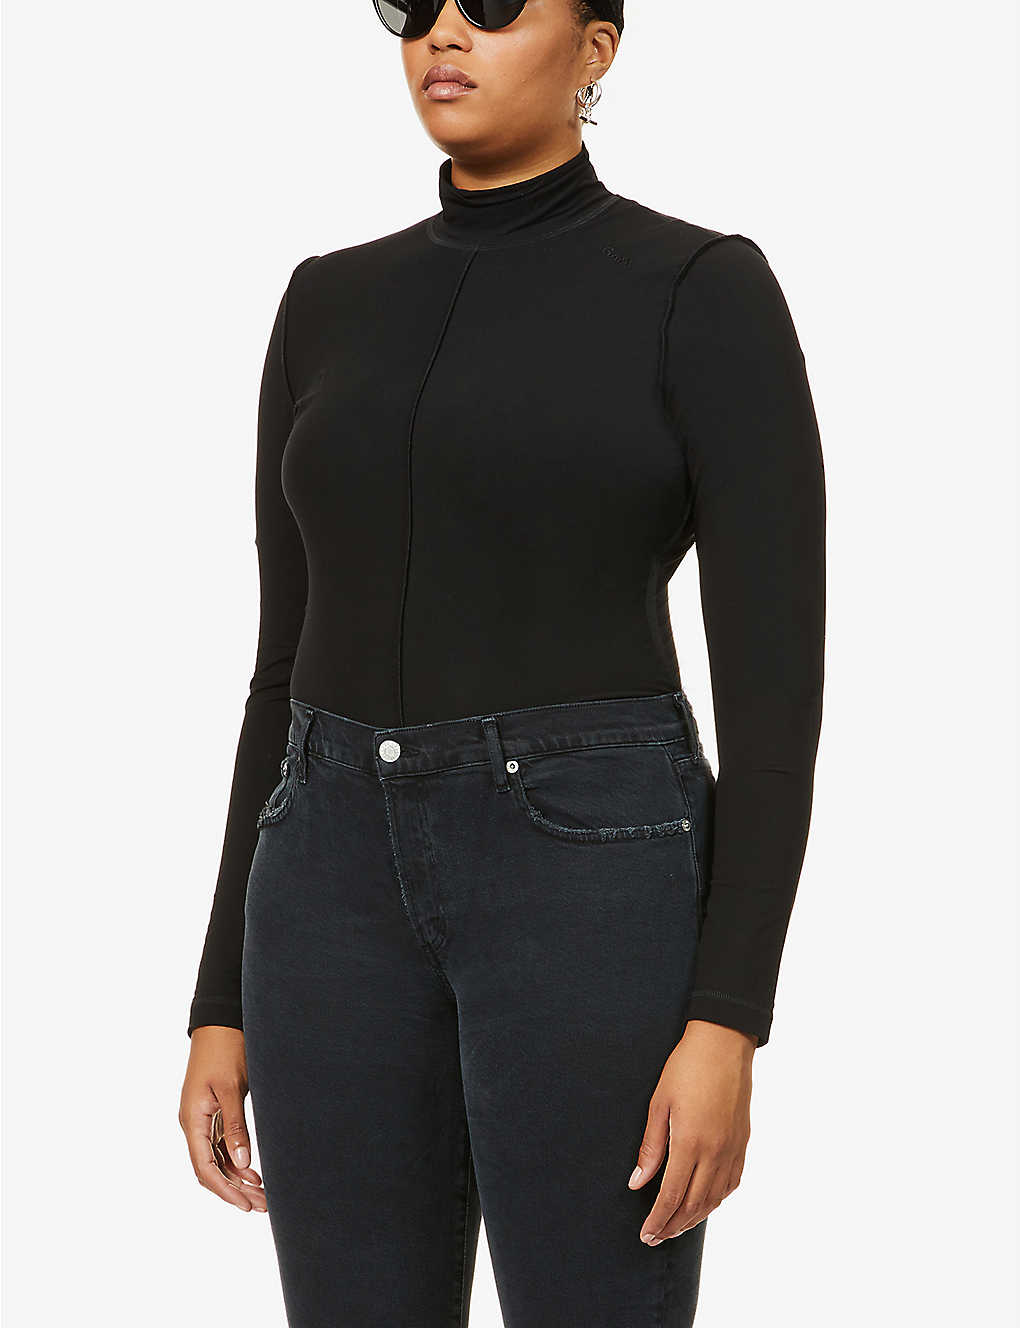 GANNI: High-neck stretch-jersey top